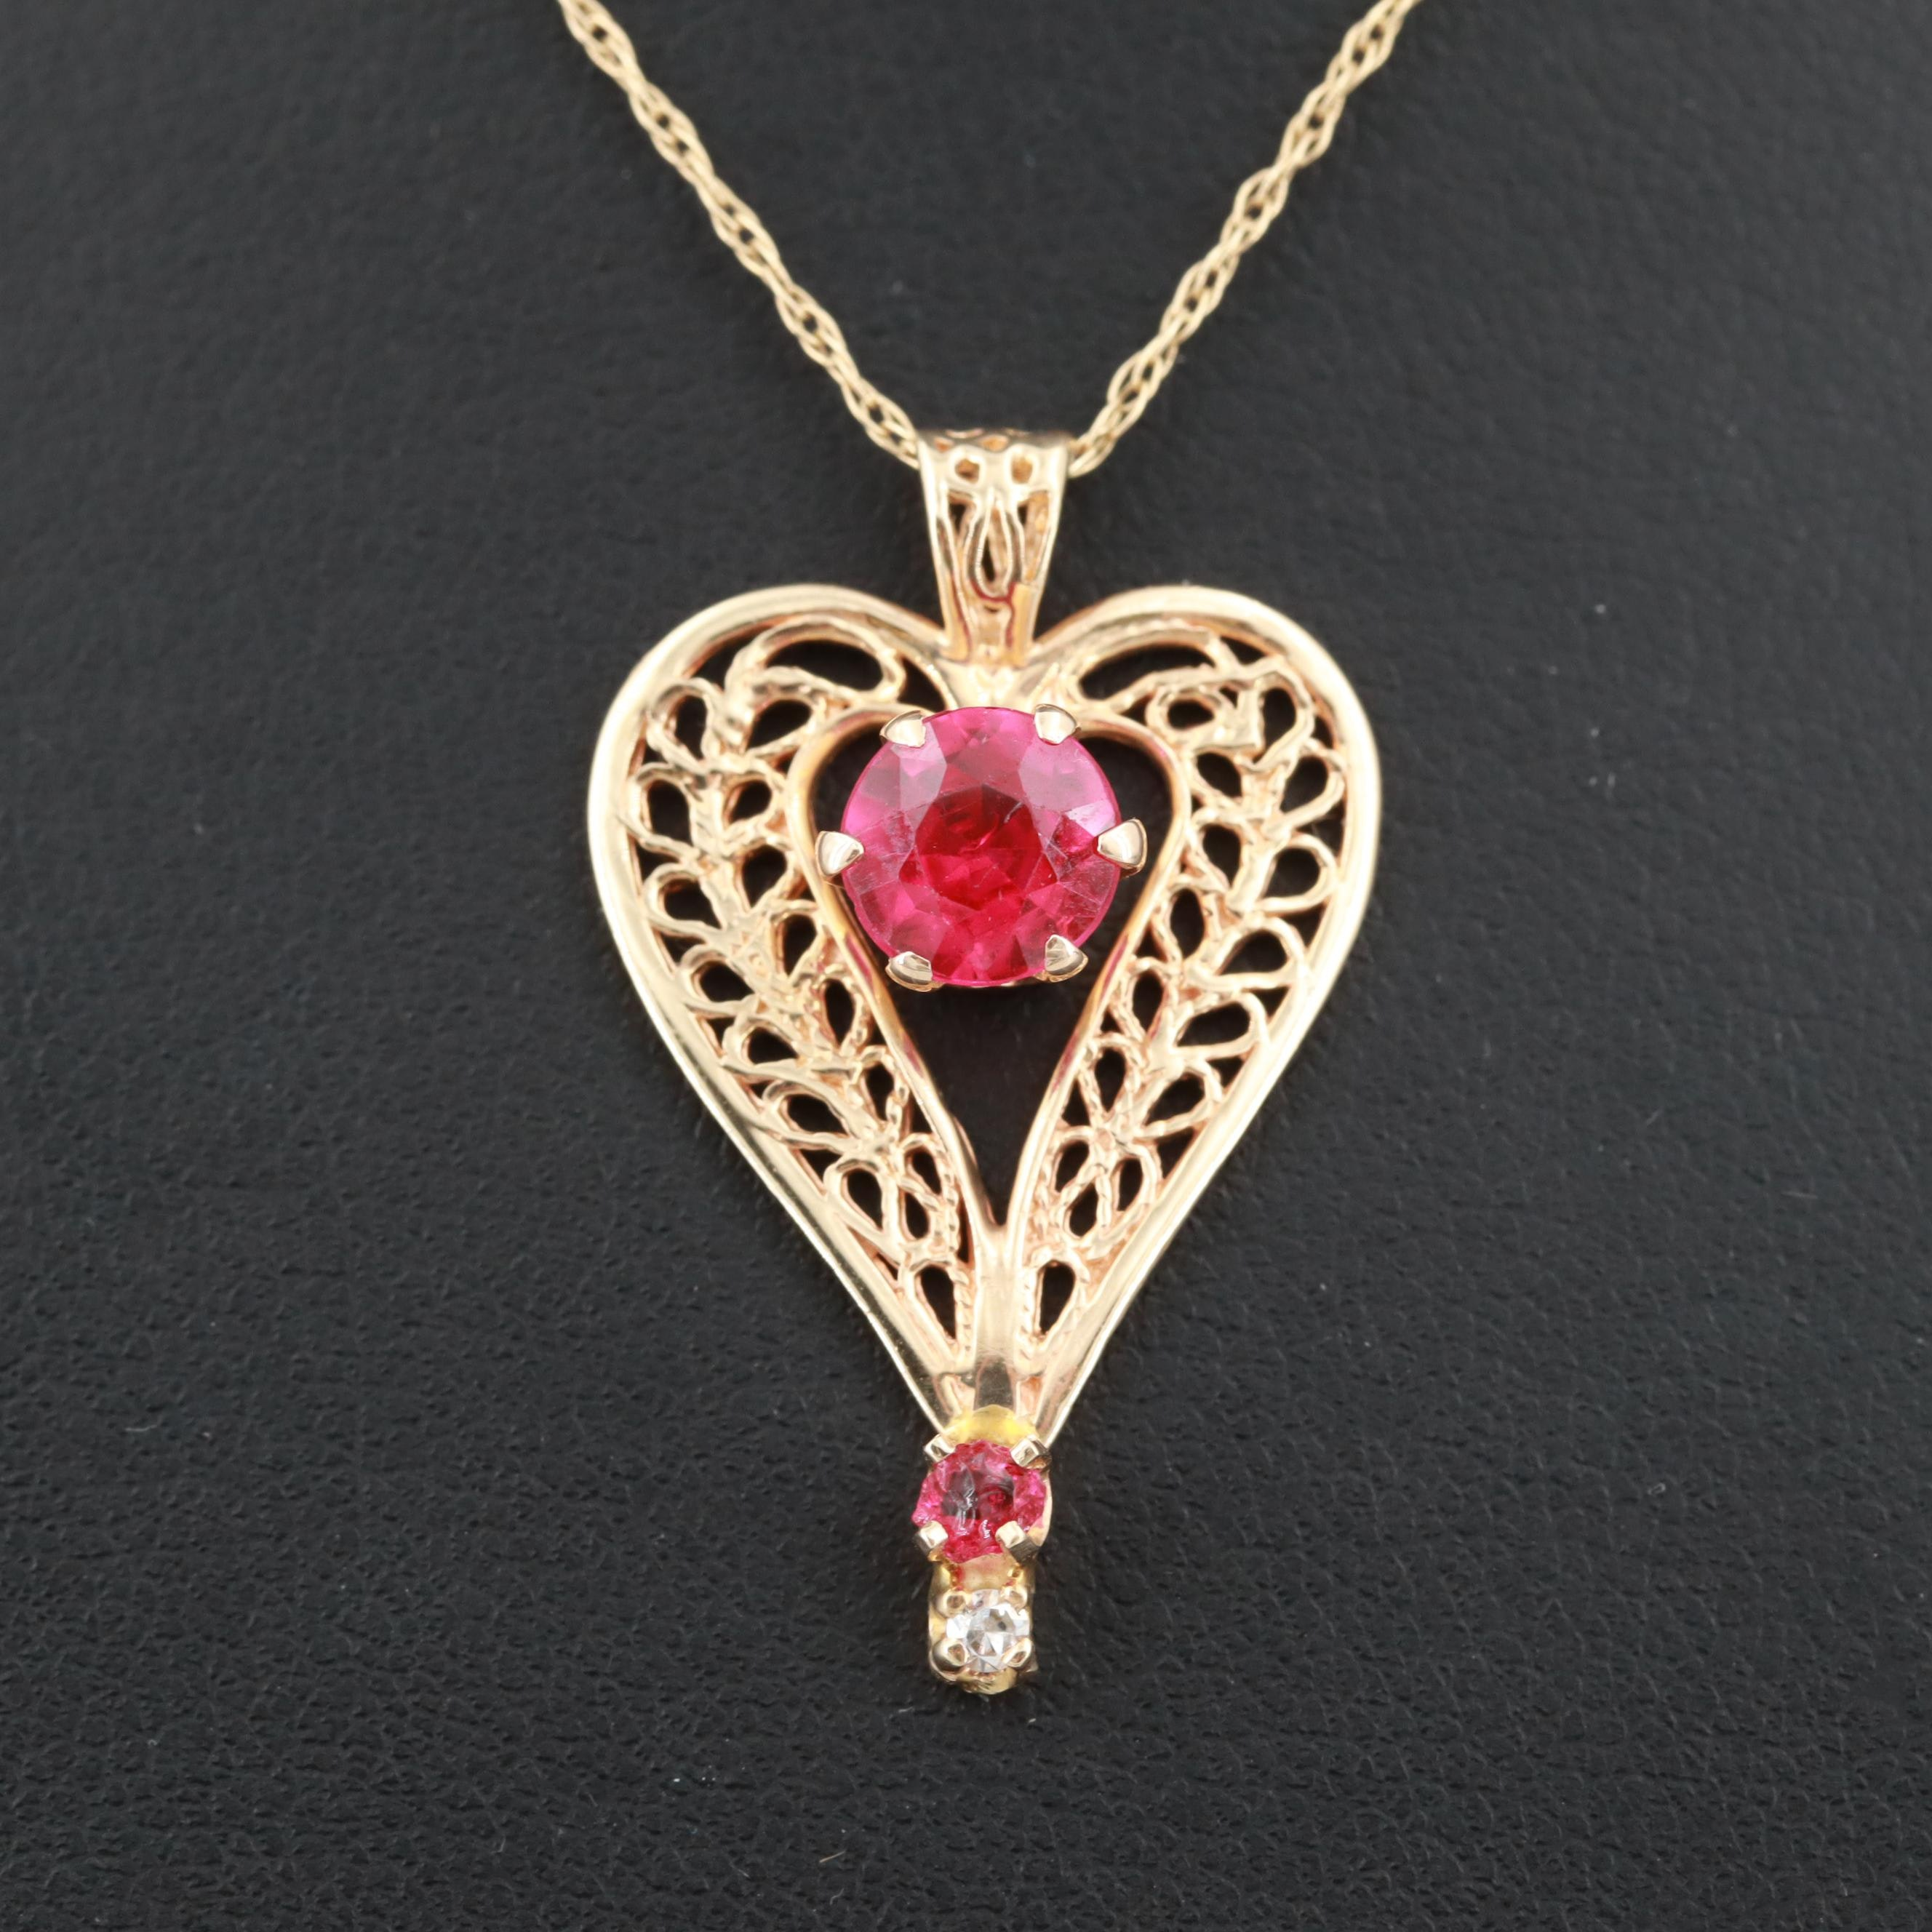 14K Yellow Gold Synthetic Ruby, Glass, and Diamond Pendant Necklace